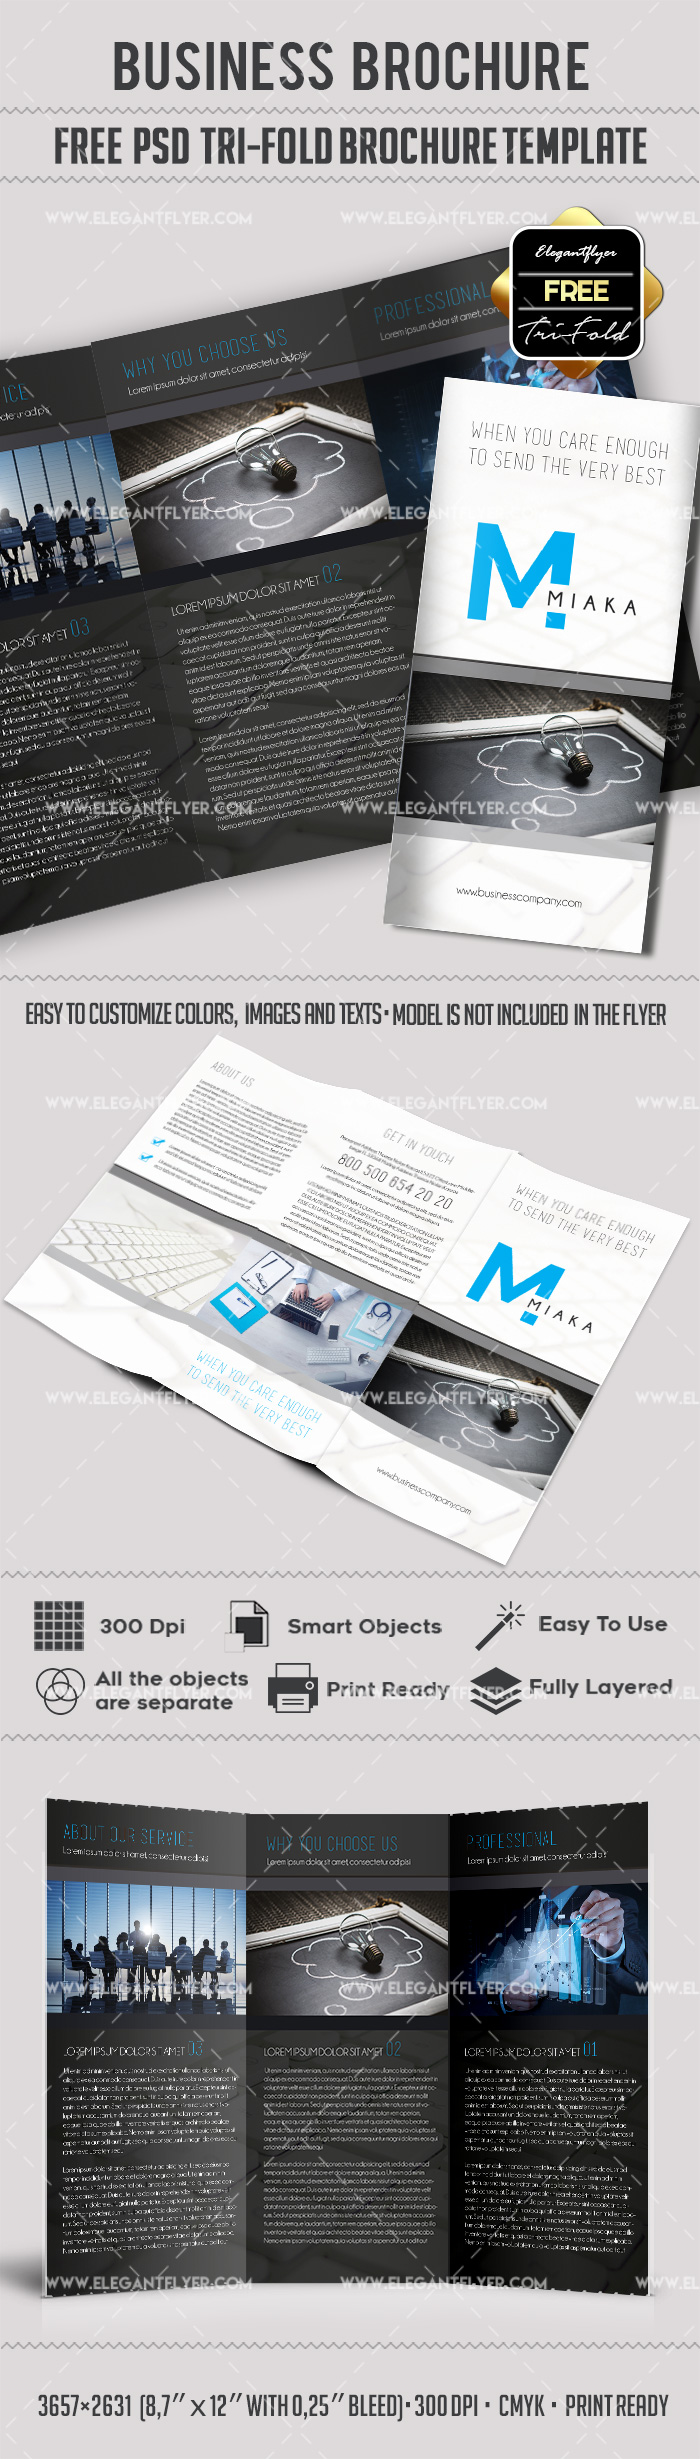 tri fold brochure template free download - tri fold brochure templates free download by elegantflyer